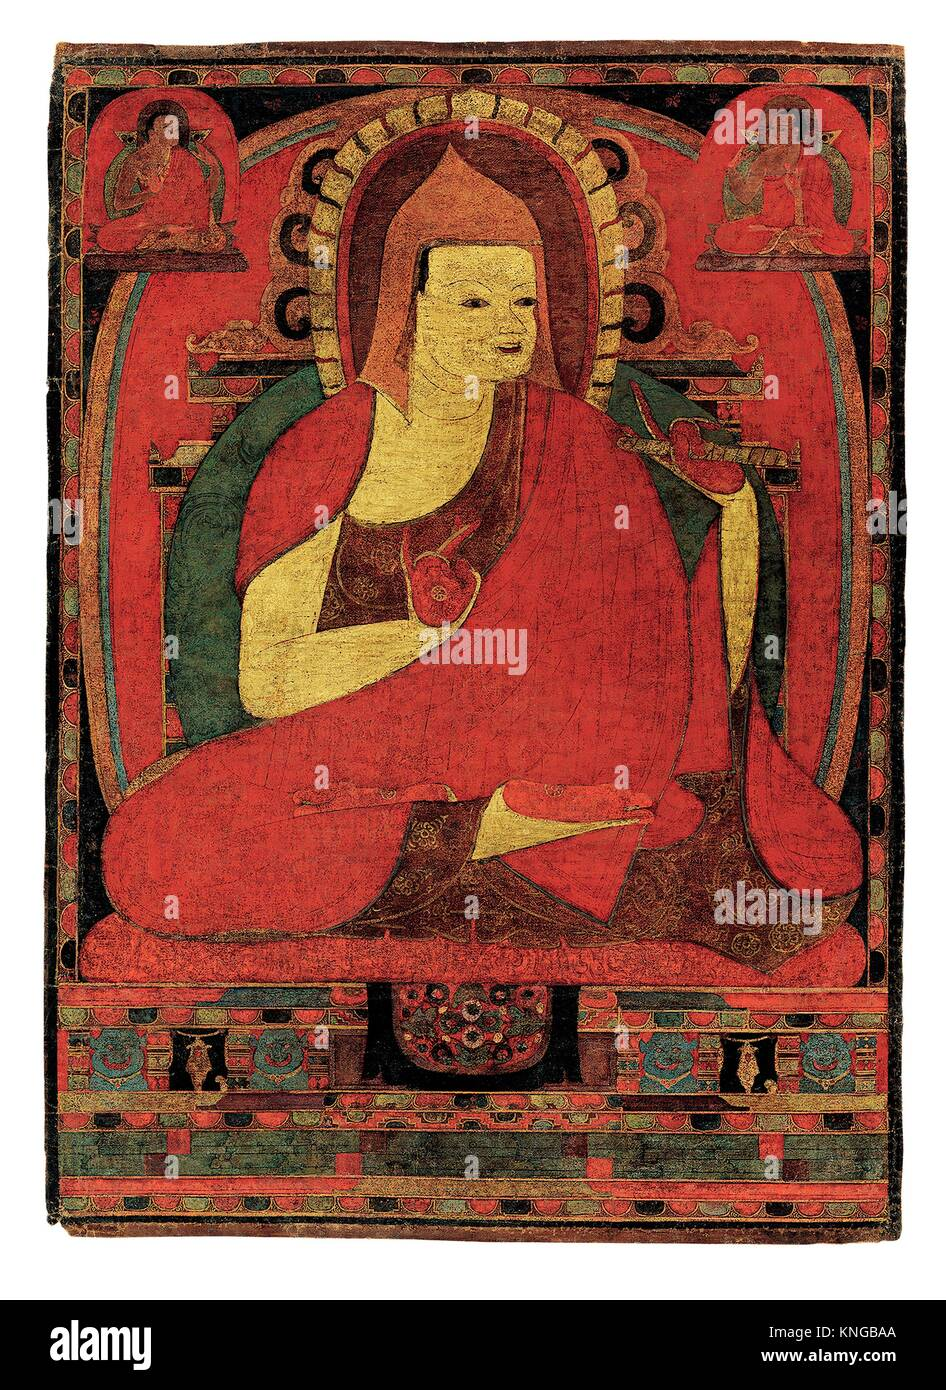 Portrait of the Indian Monk Atisha. Date: early to mid-12th century; Culture: Tibet; Medium: Distemper and gold - Stock Image